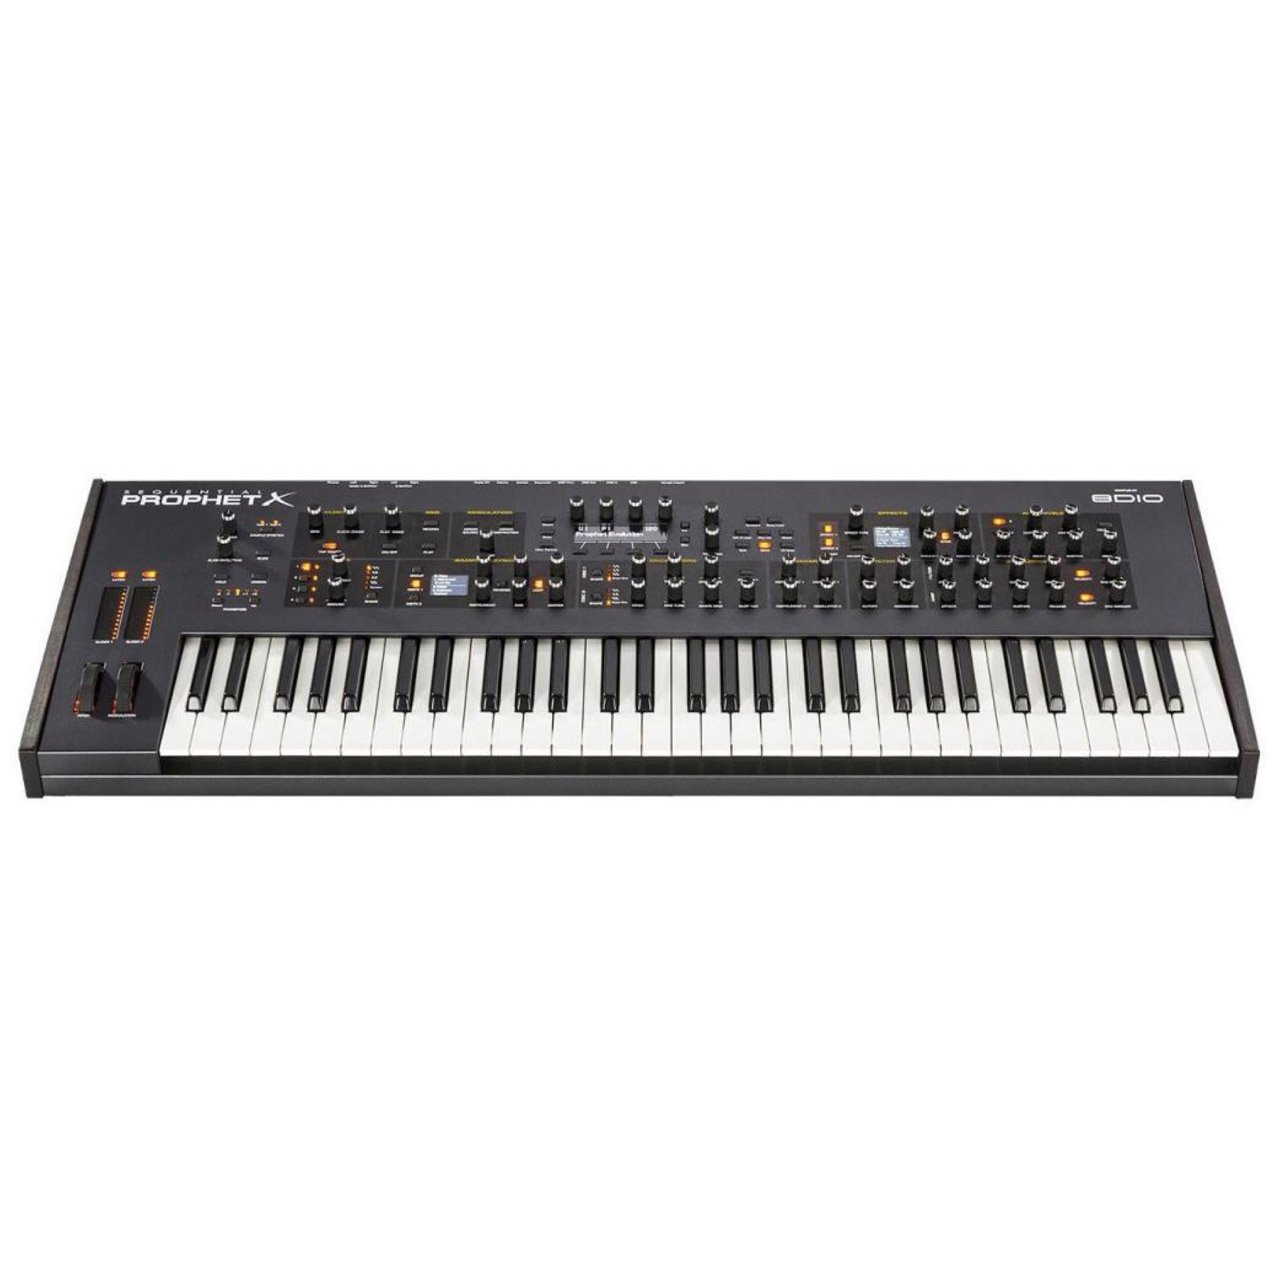 Keyboard Synthesizers - Dave Smith Instruments Sequential Prophet X - Samples-Plus-Synthesis Hybrid Synth